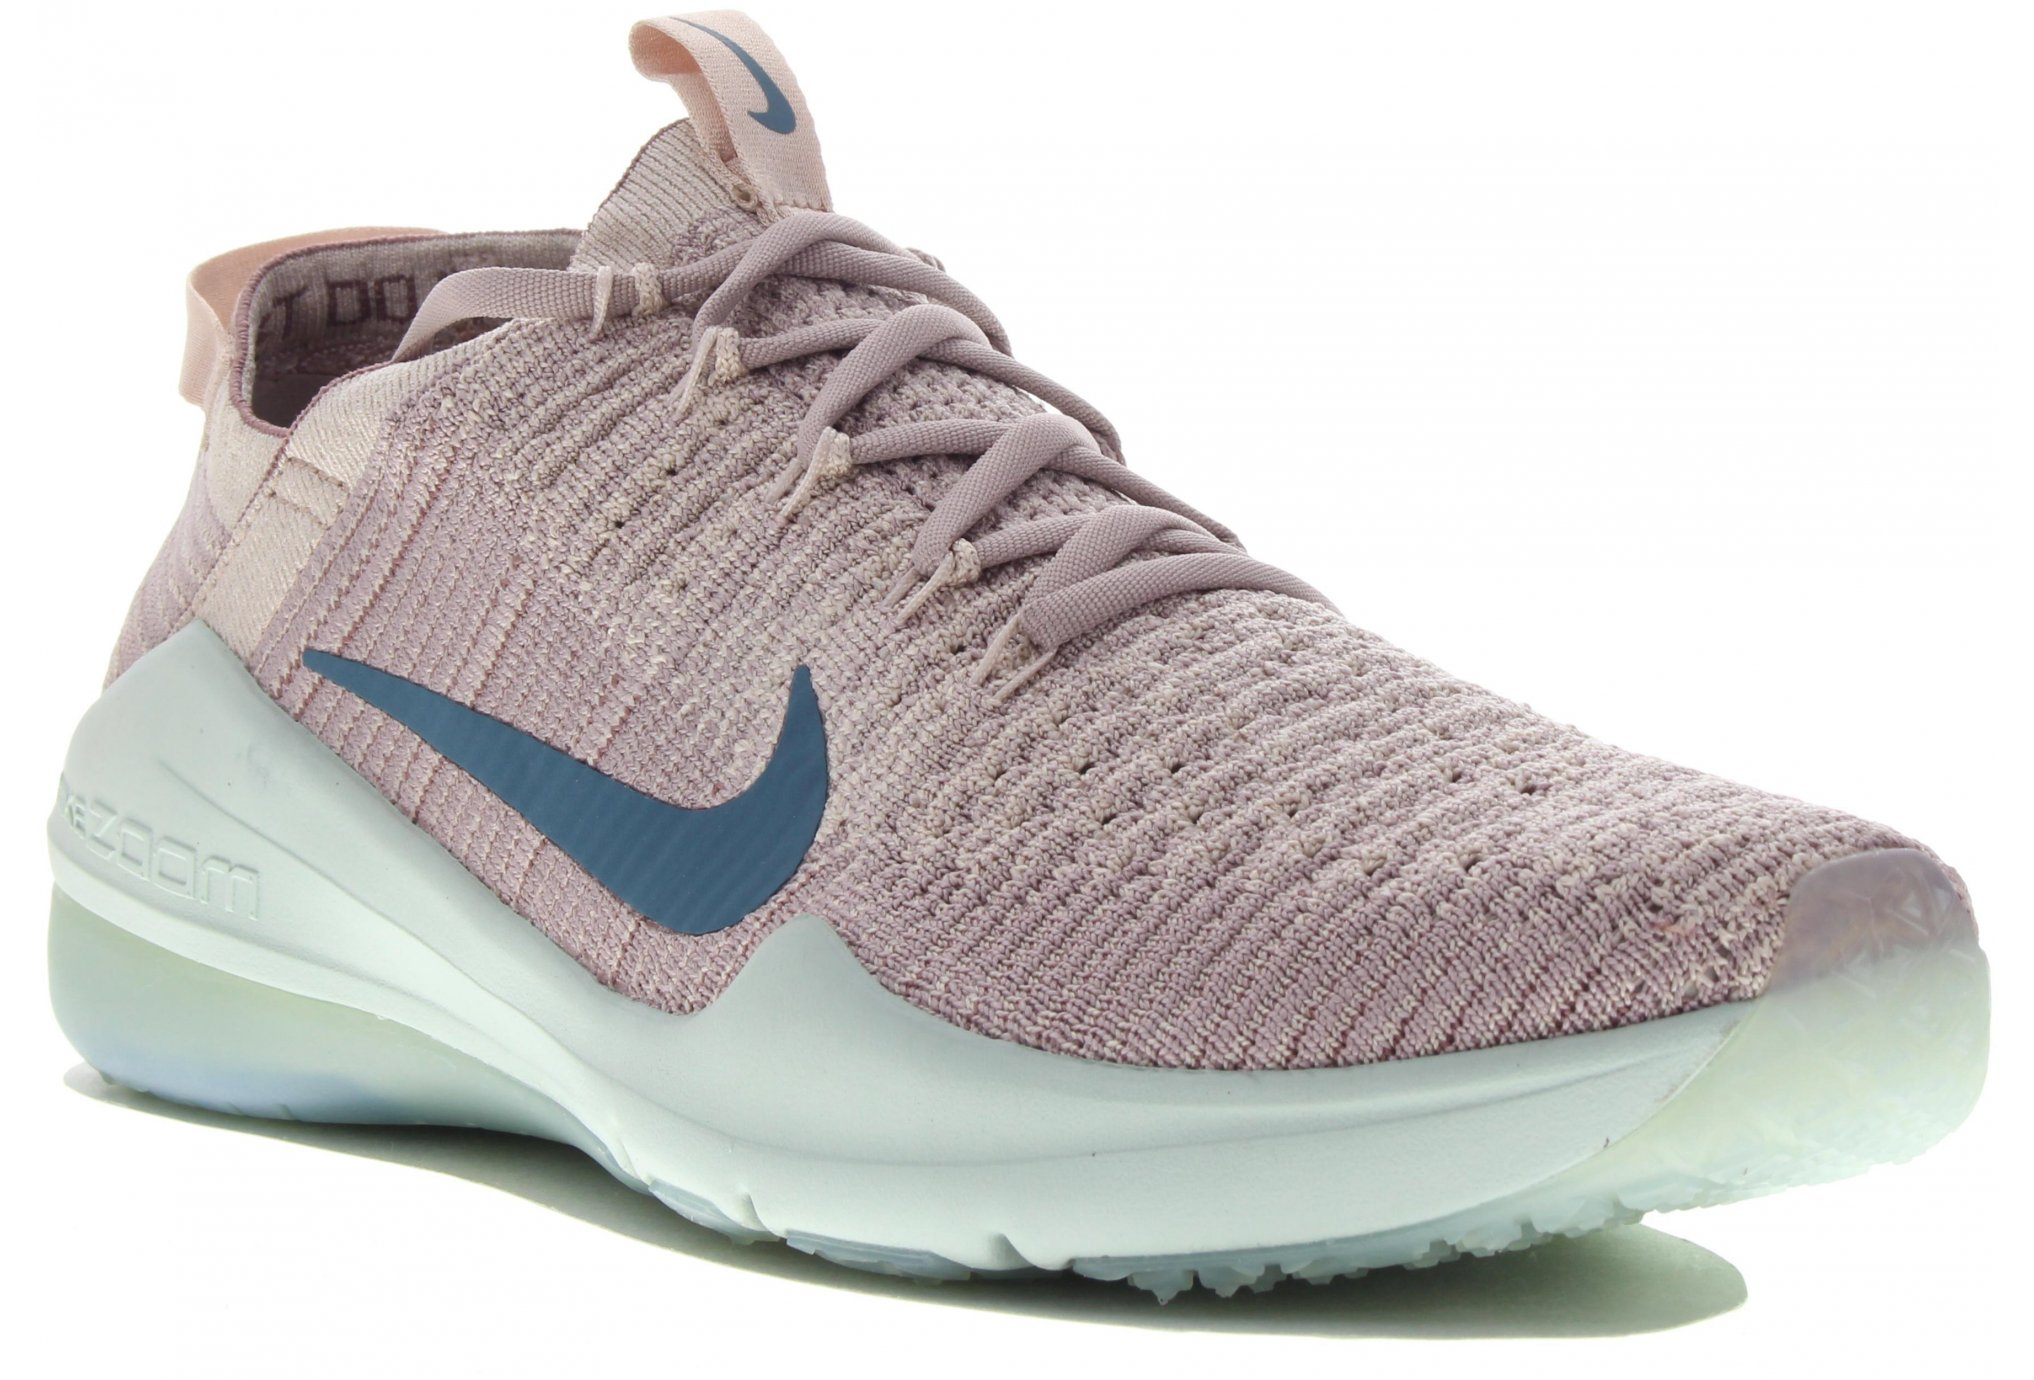 Nike Air Zoom Fearless Flyknit 2 W Chaussures running femme